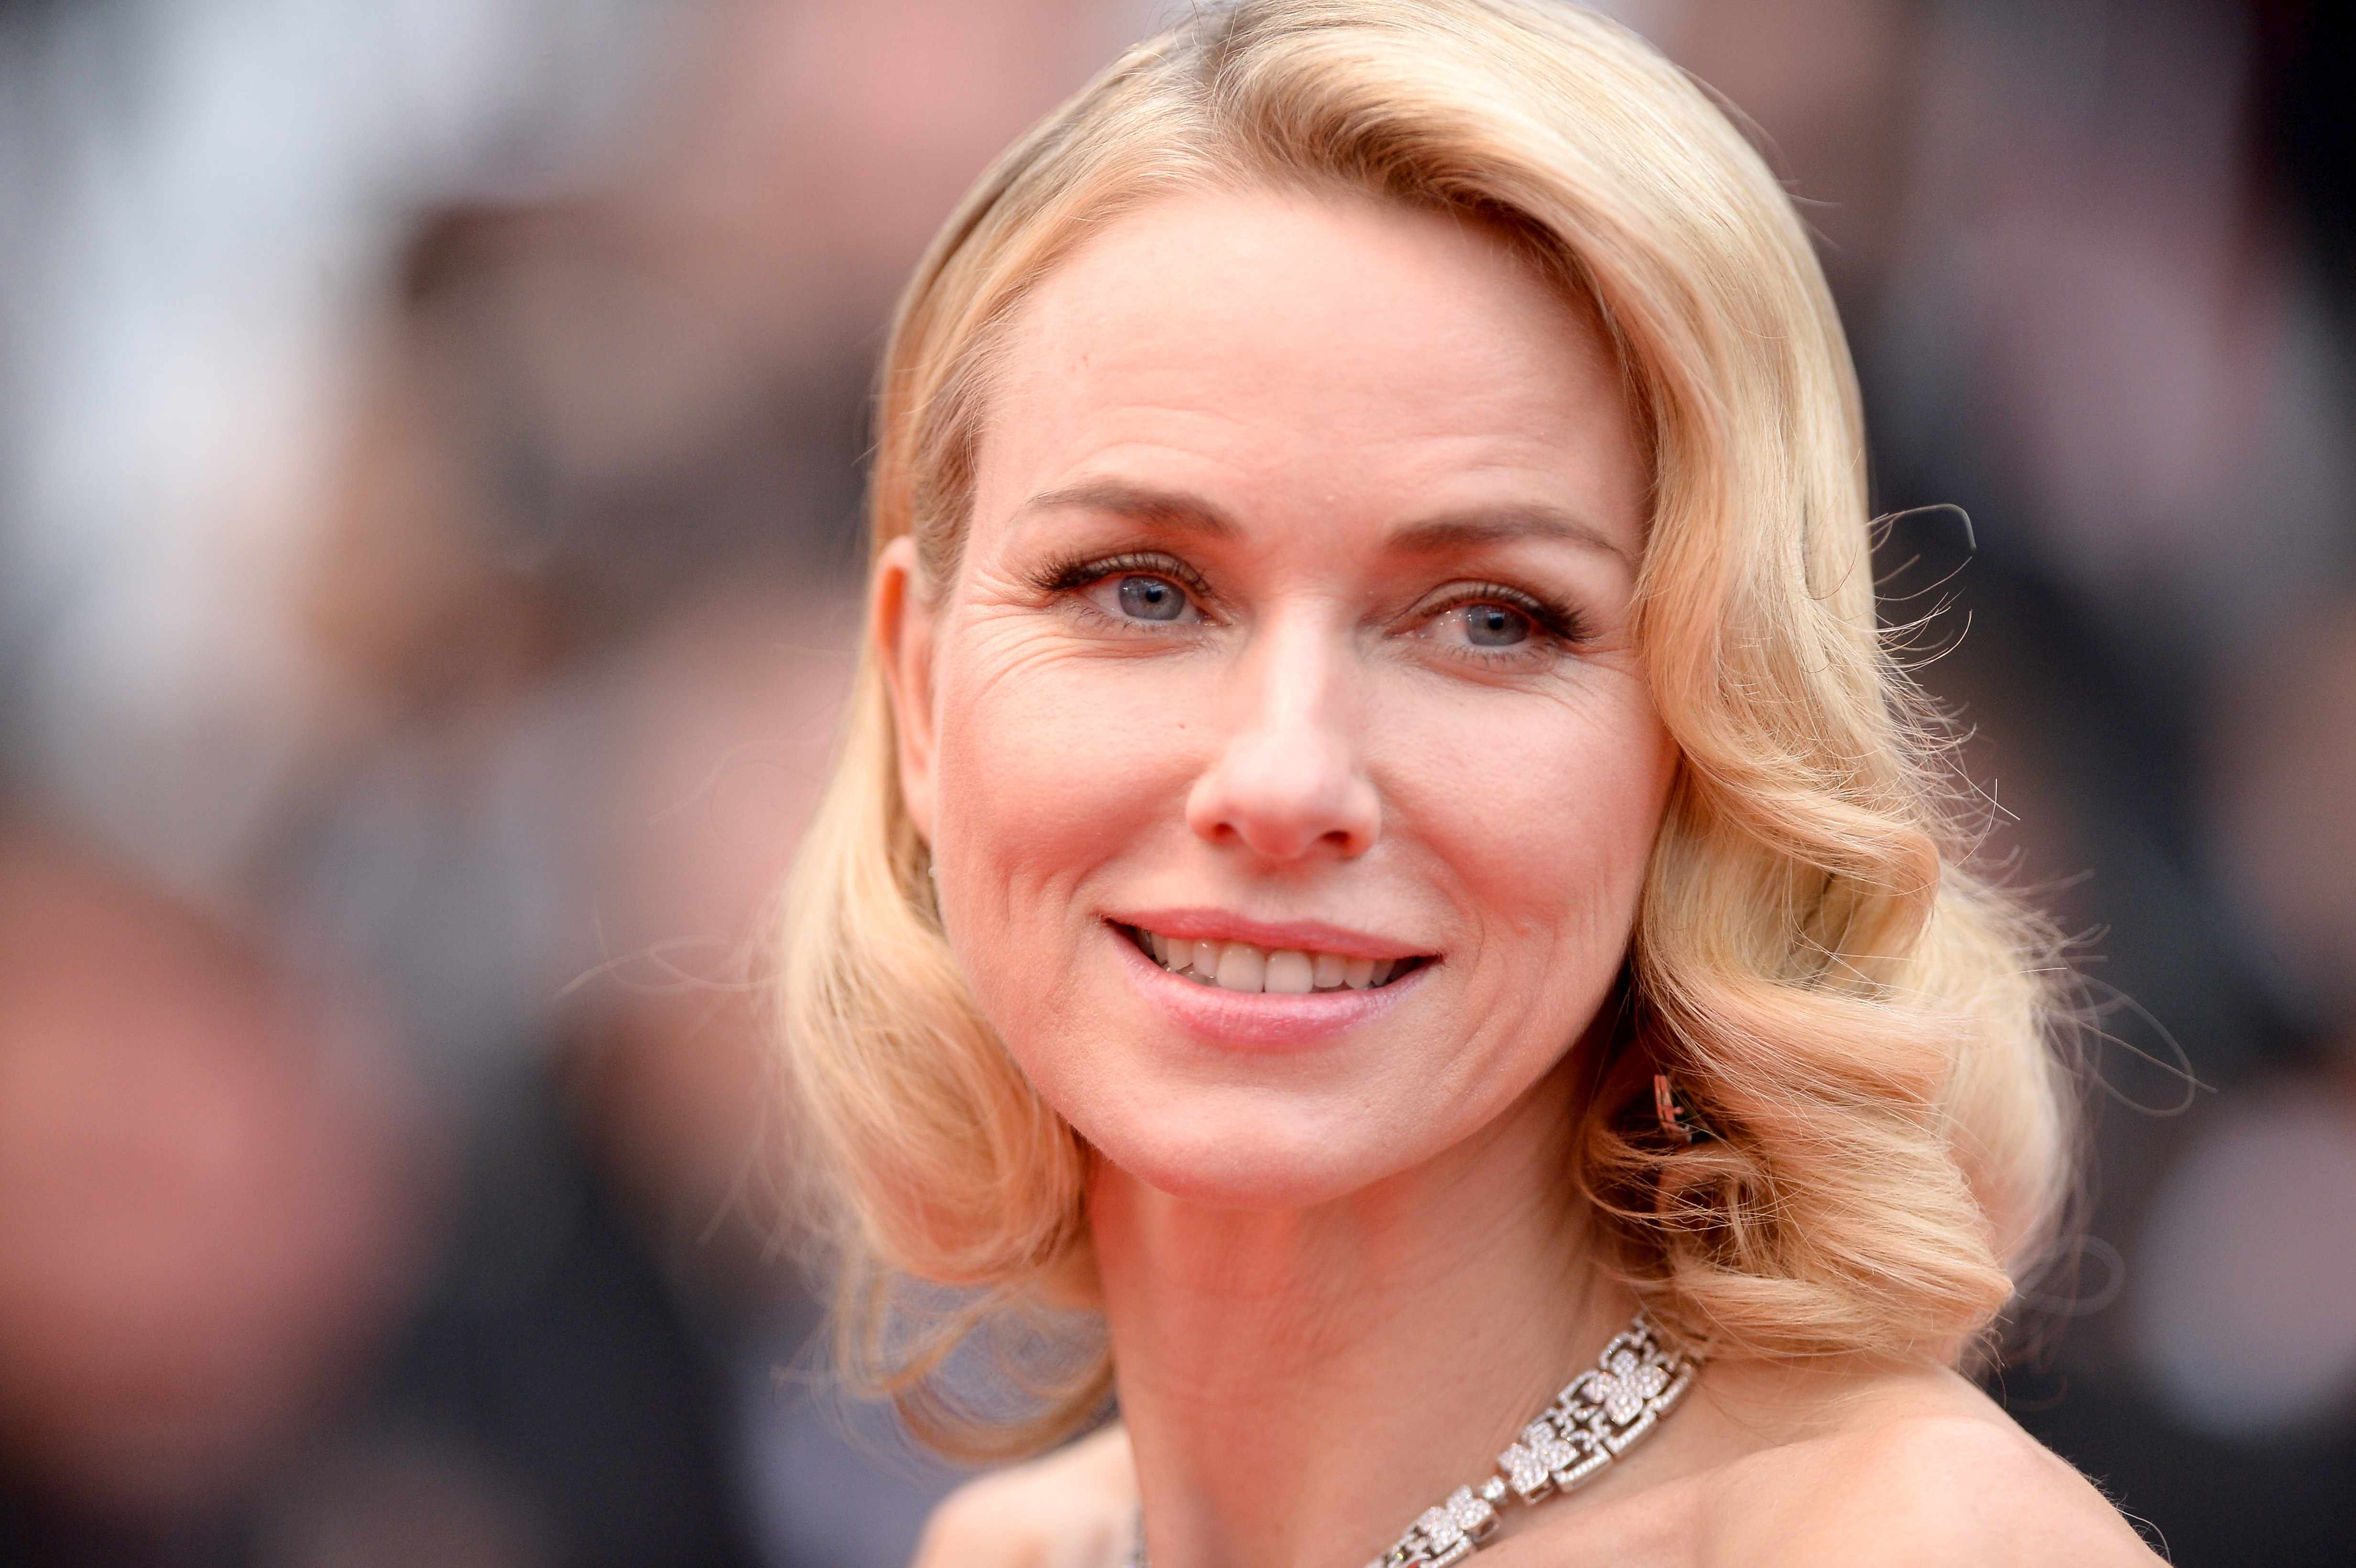 """CANNES, FRANCE - MAY 14:  Naomi Watts attends the """"Mad Max : Fury Road""""  Premiere during the 68th annual Cannes Film Festival on May 14, 2015 in Cannes, France.  (Photo by Dominique Charriau/WireImage)  Getty, TL"""